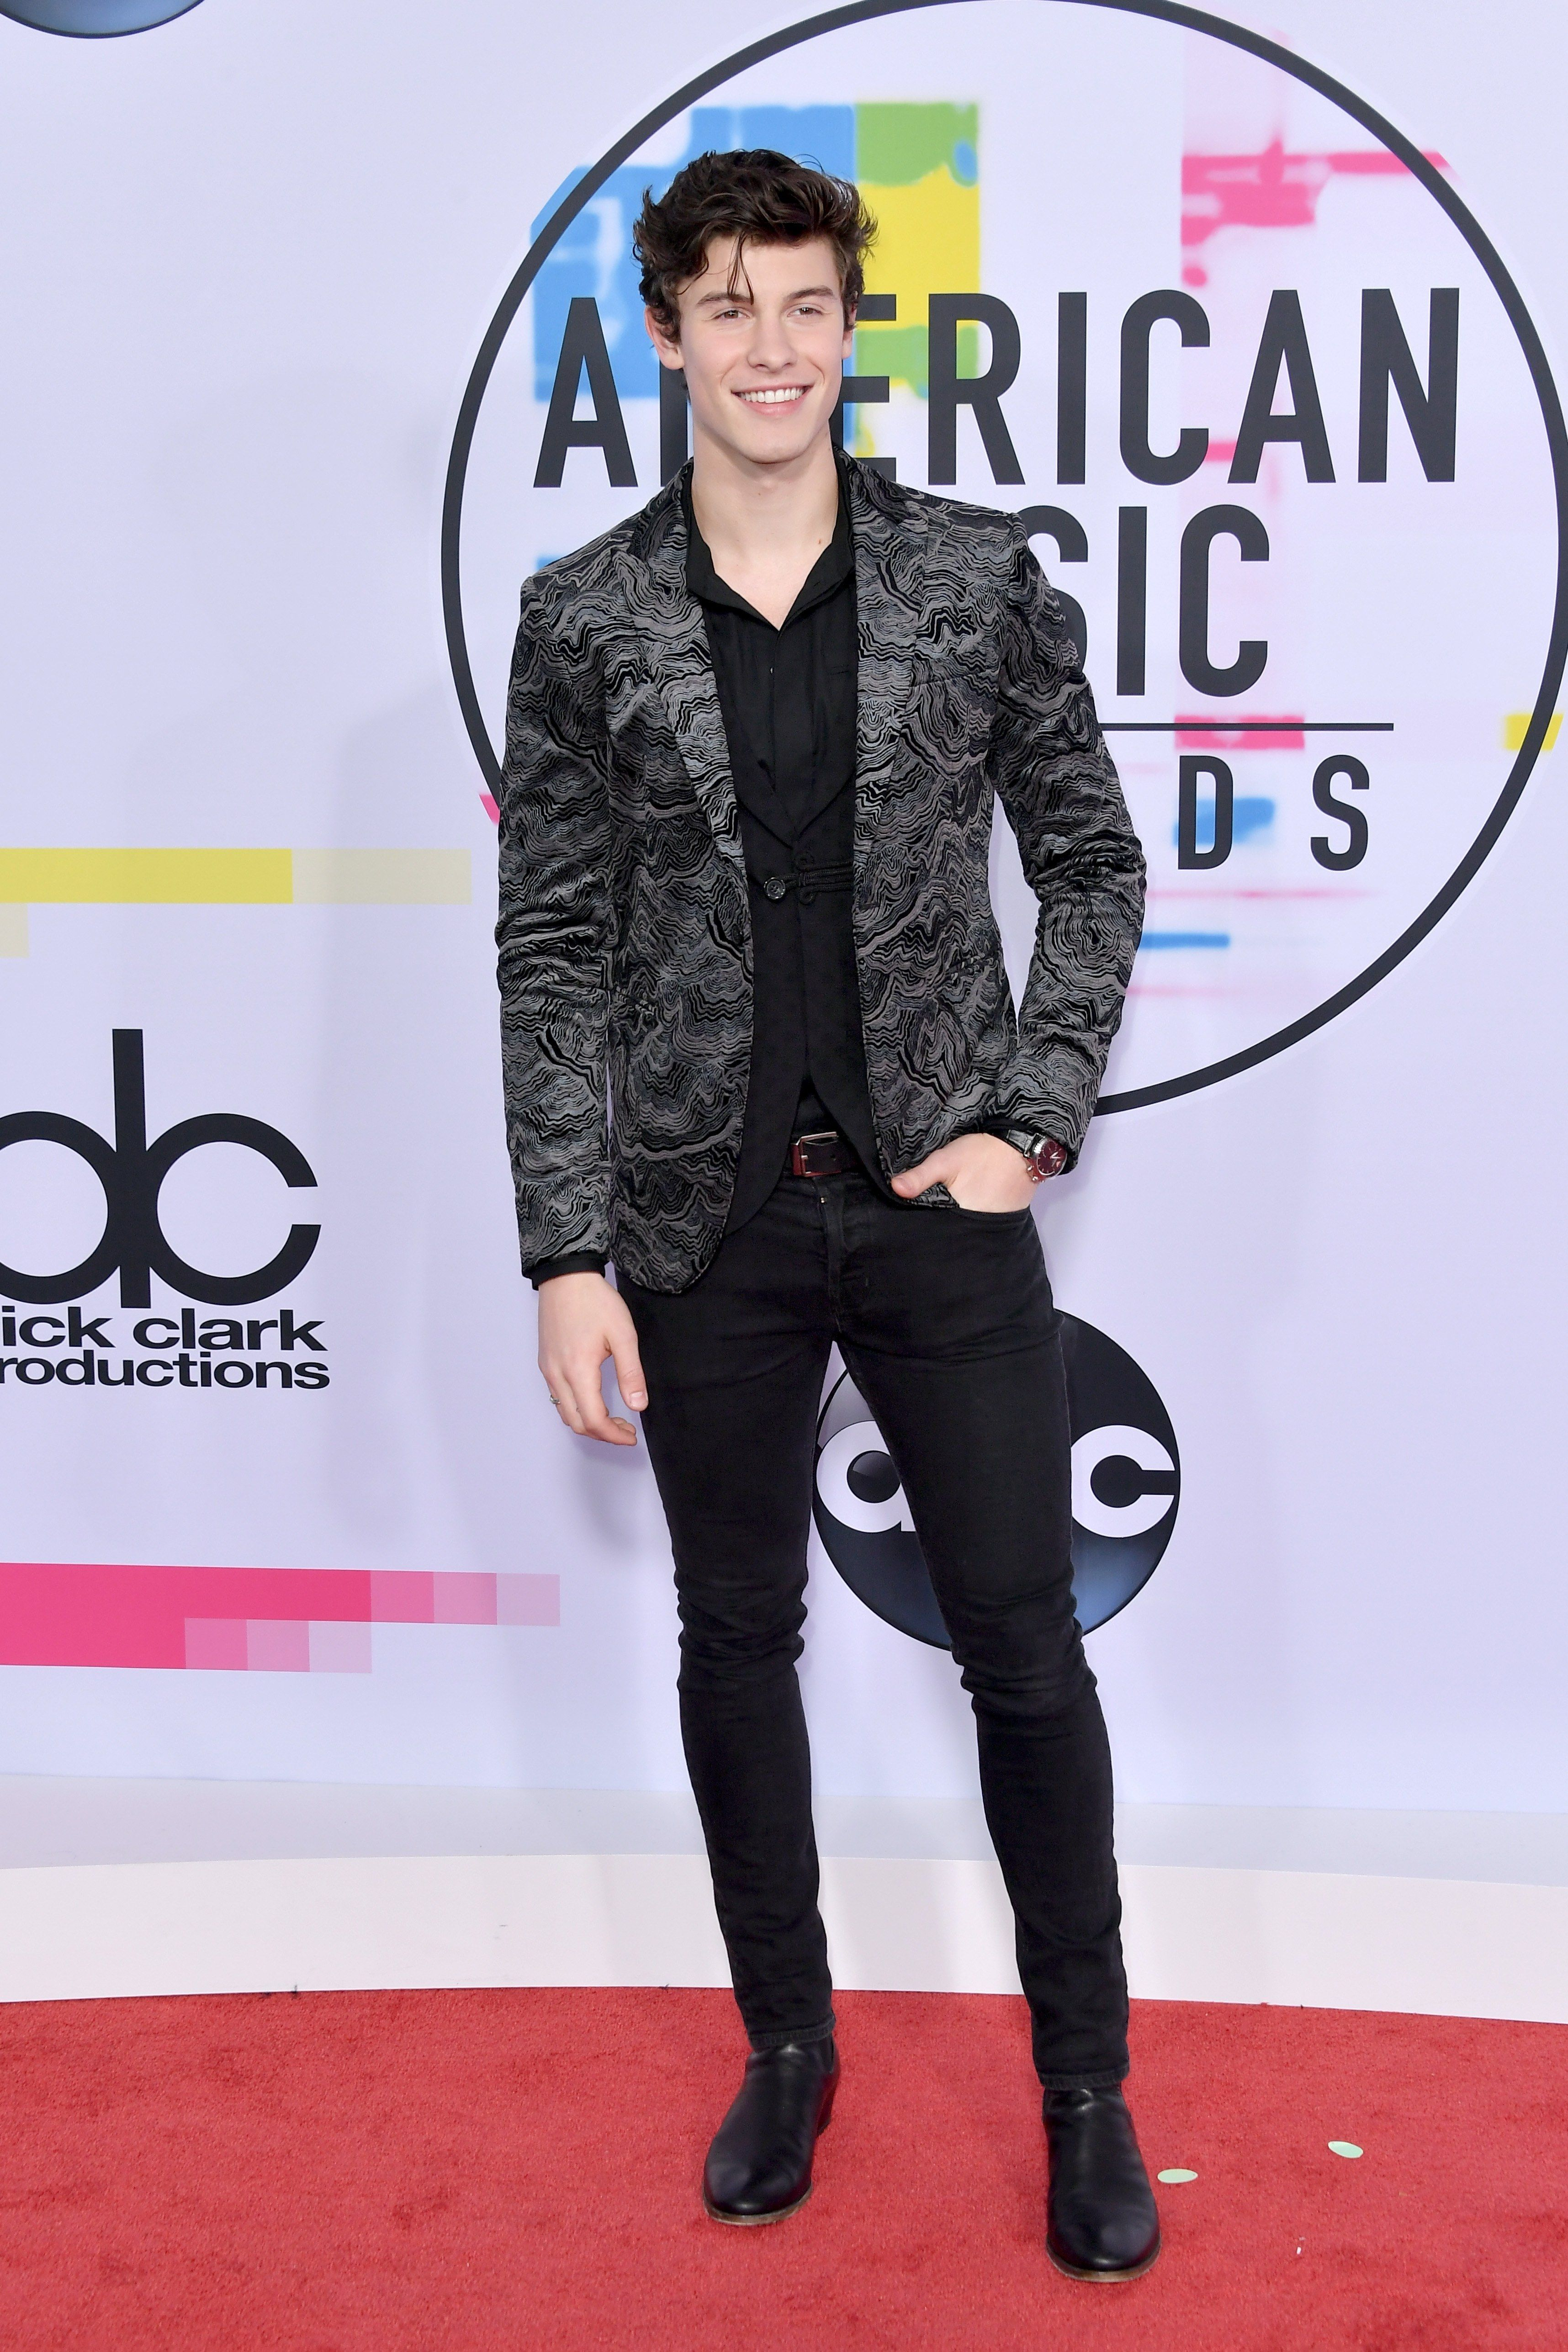 American Music Awards 2017 Fashion Live From The Red Carpet Shawn Mendes 2017 Shawn Shawn Mendes